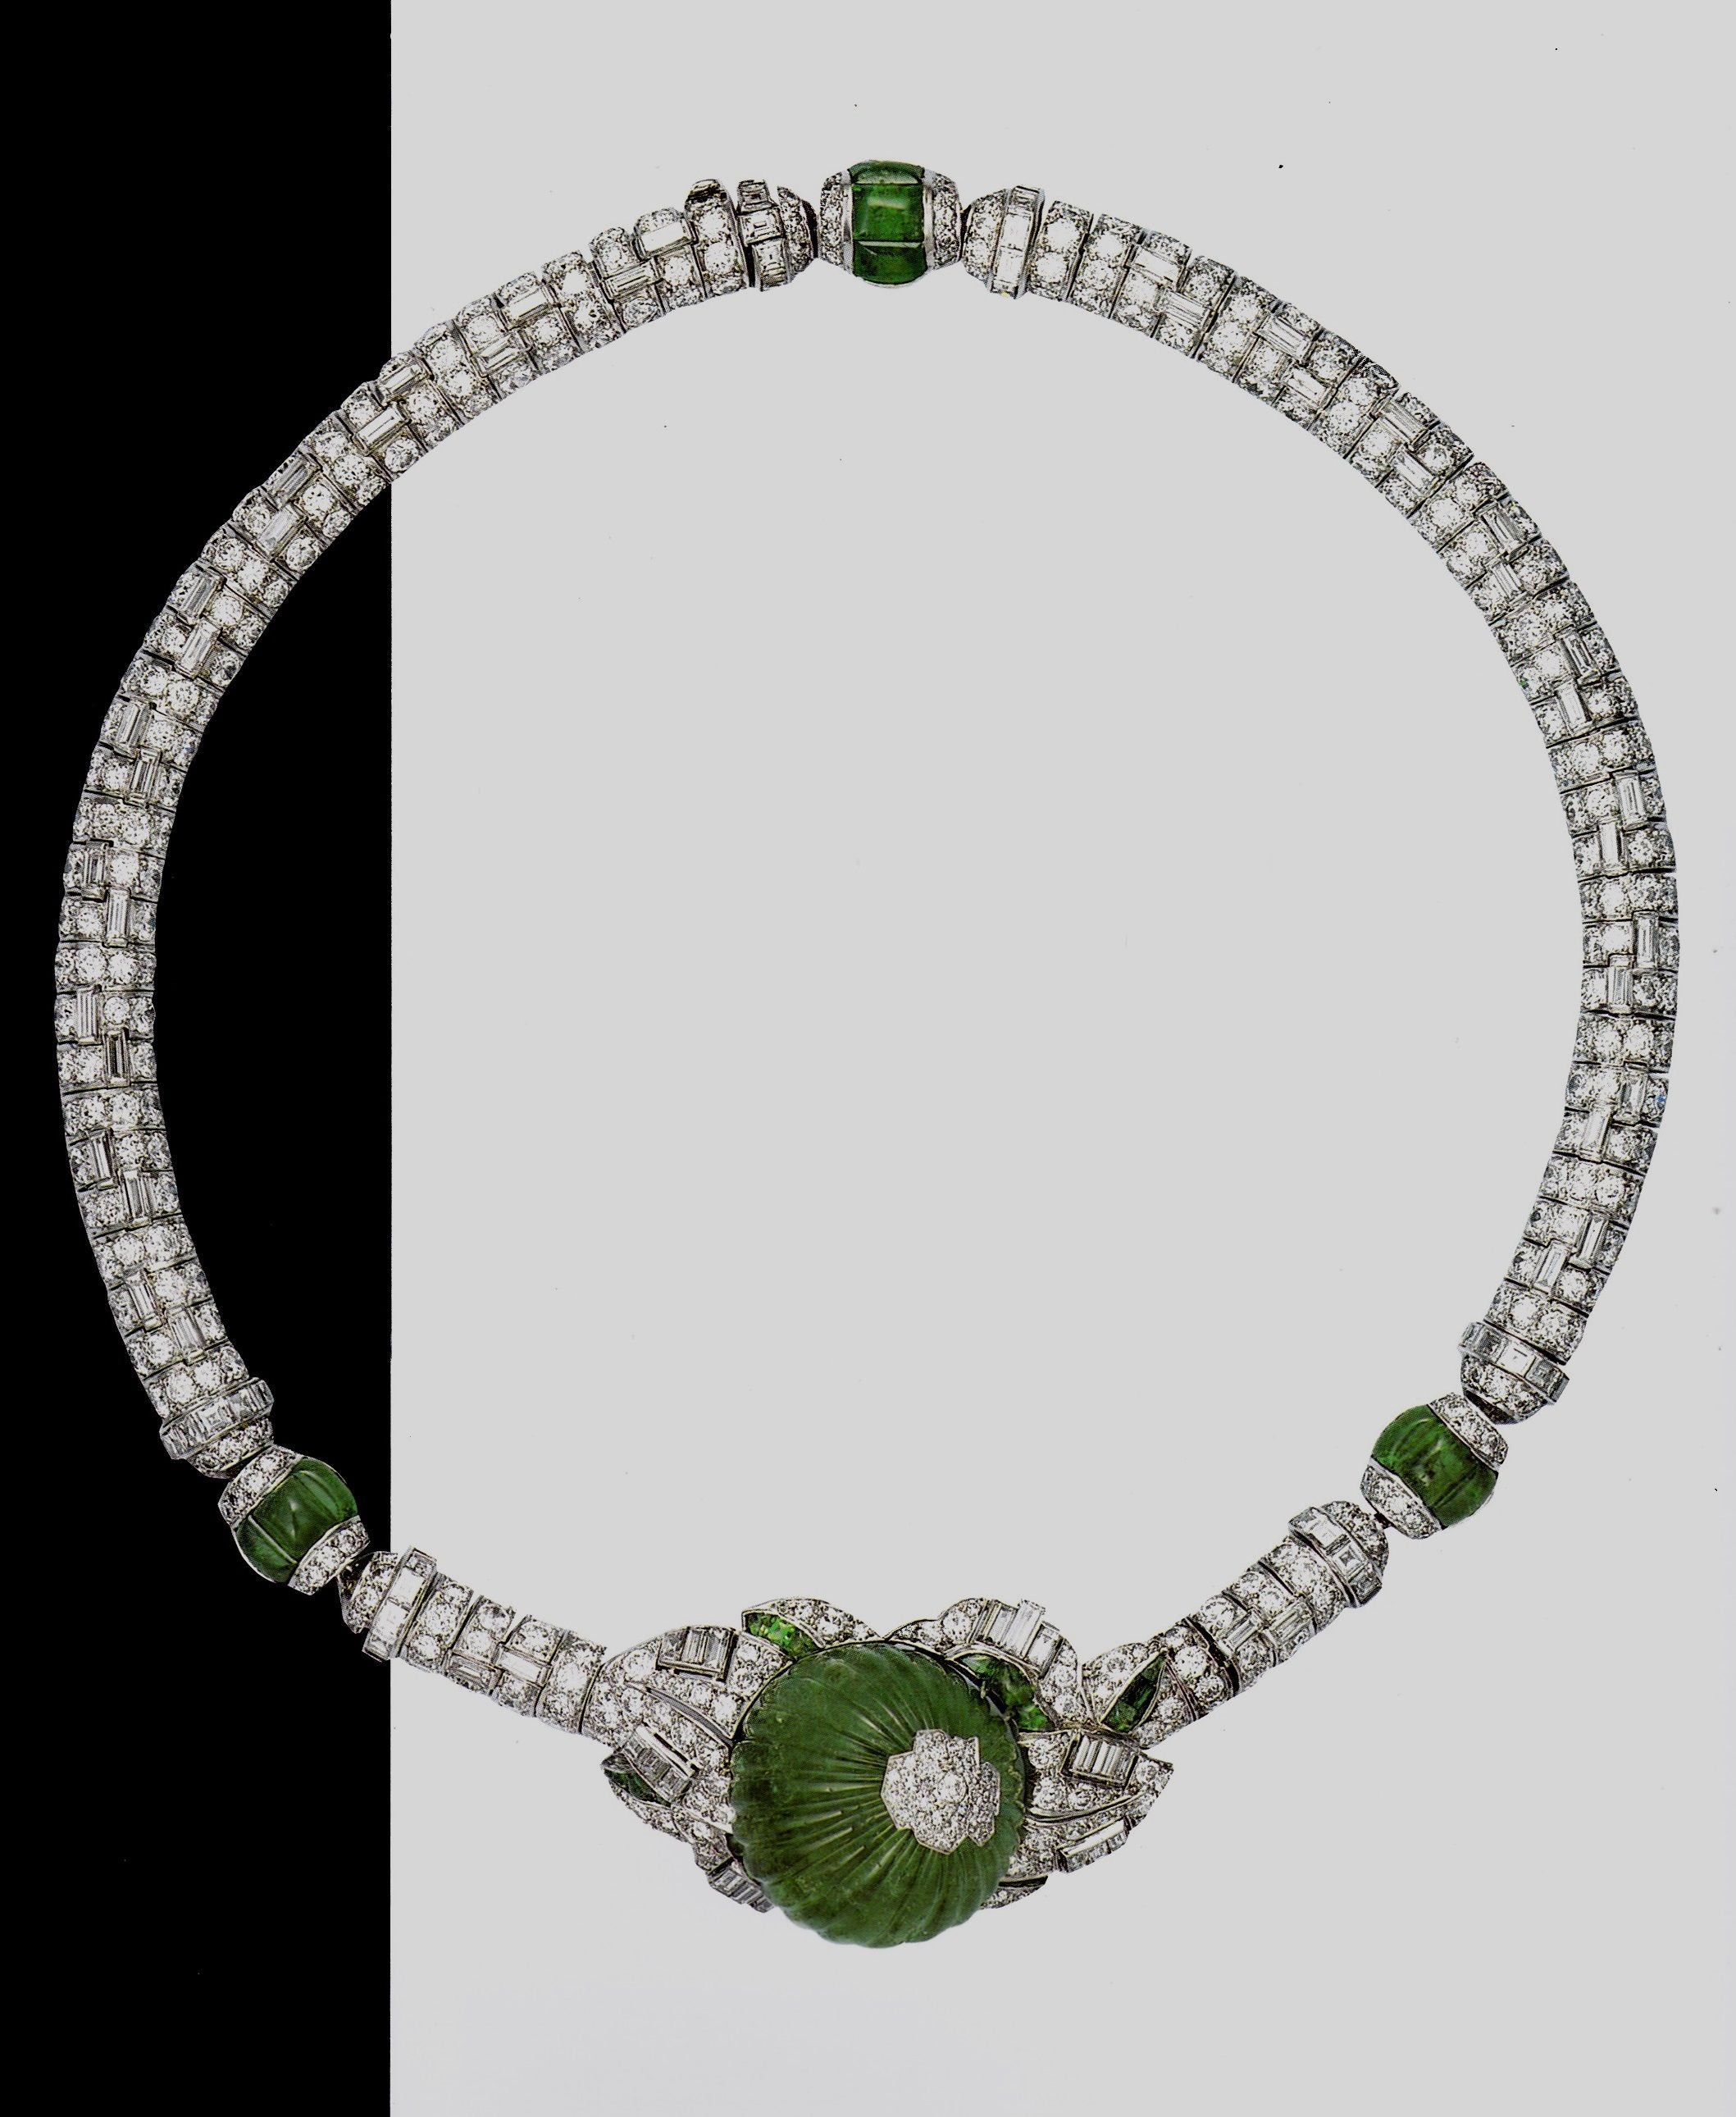 An Art Deco platinum, diamond and emerald necklace, by Mauboussin, circa 1931. Created for actress Claire Luce. Source: Hollywood Jewels - Proddow, Healy, Fasel.